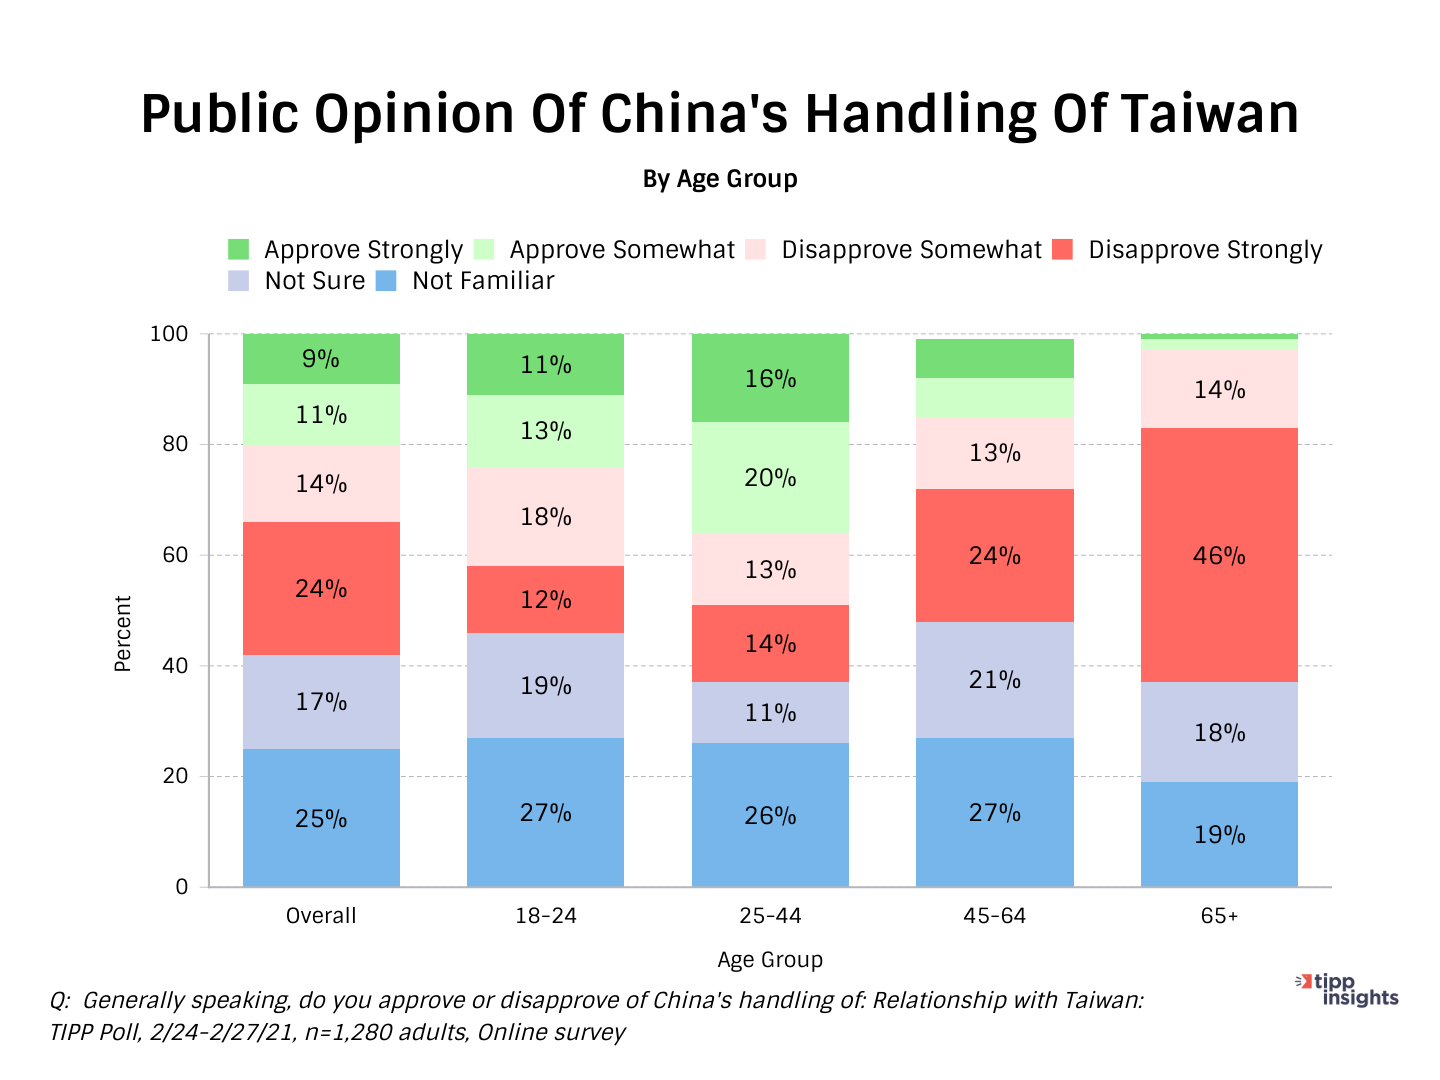 TIPP Poll Resulst: AMericans opinion of the handling of Taiwan by China